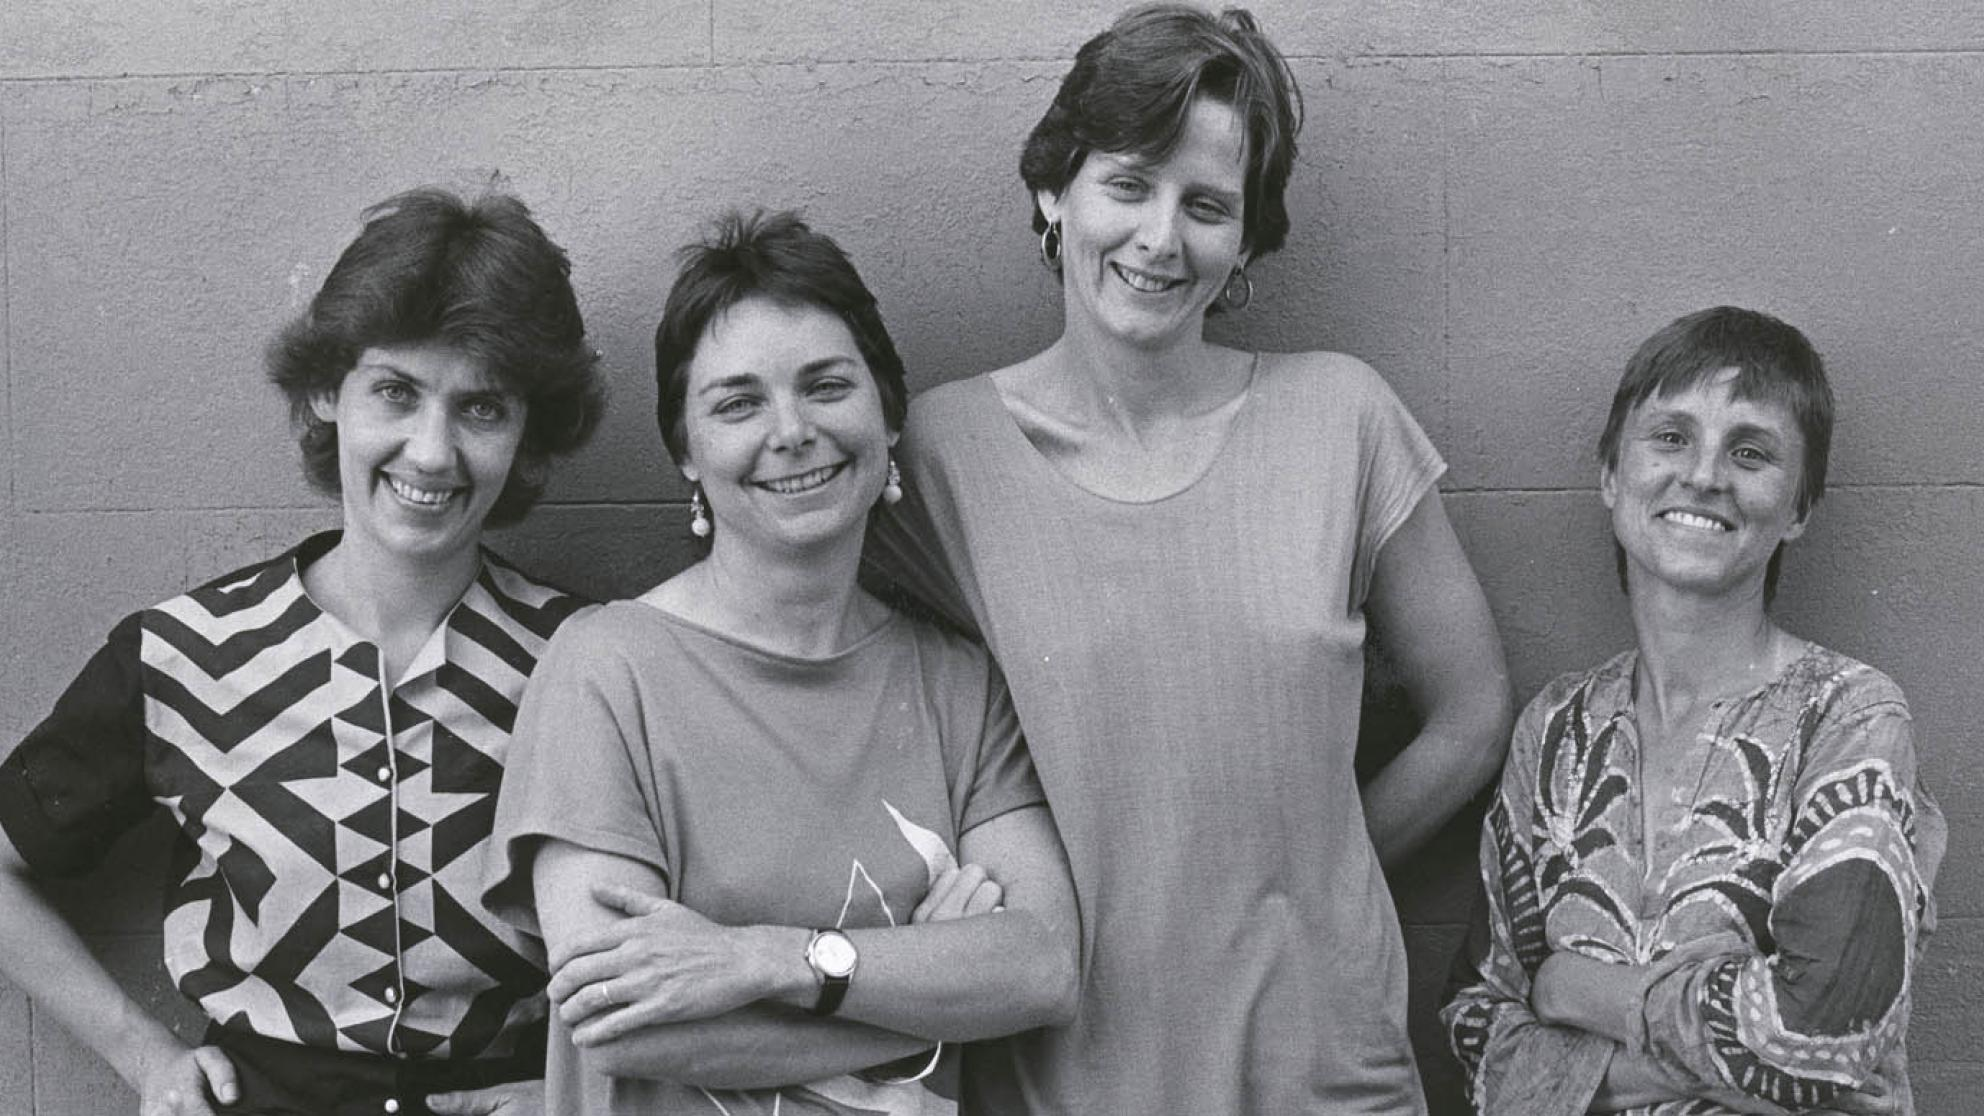 Filmmakers Margot Nash, Megan Mcmurchy, Jeni Thornley and Margot Oliver standing in front of a wall smiling for the camera.